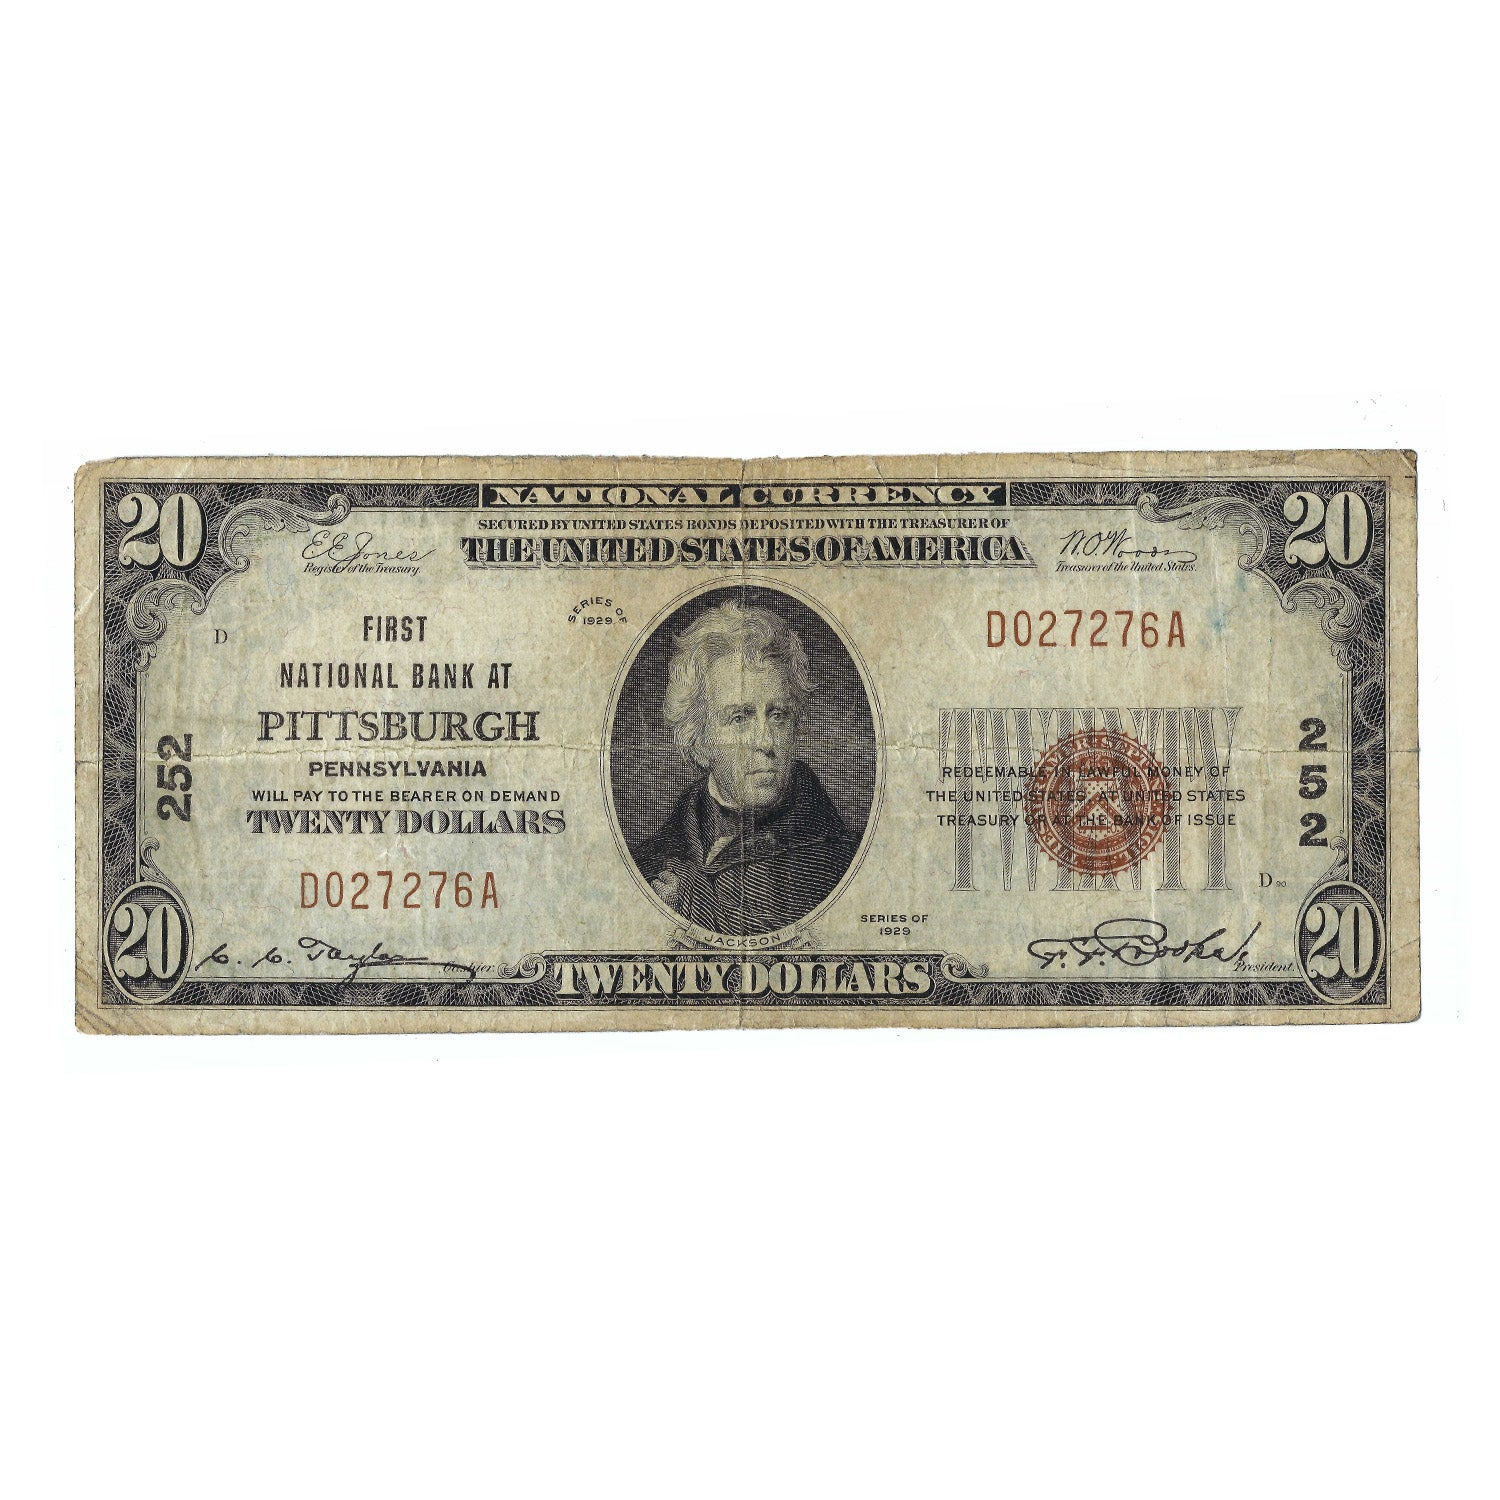 1929 $20 Small Size Federal Reserve Bank Note of Pittsburgh, PA, Circulated